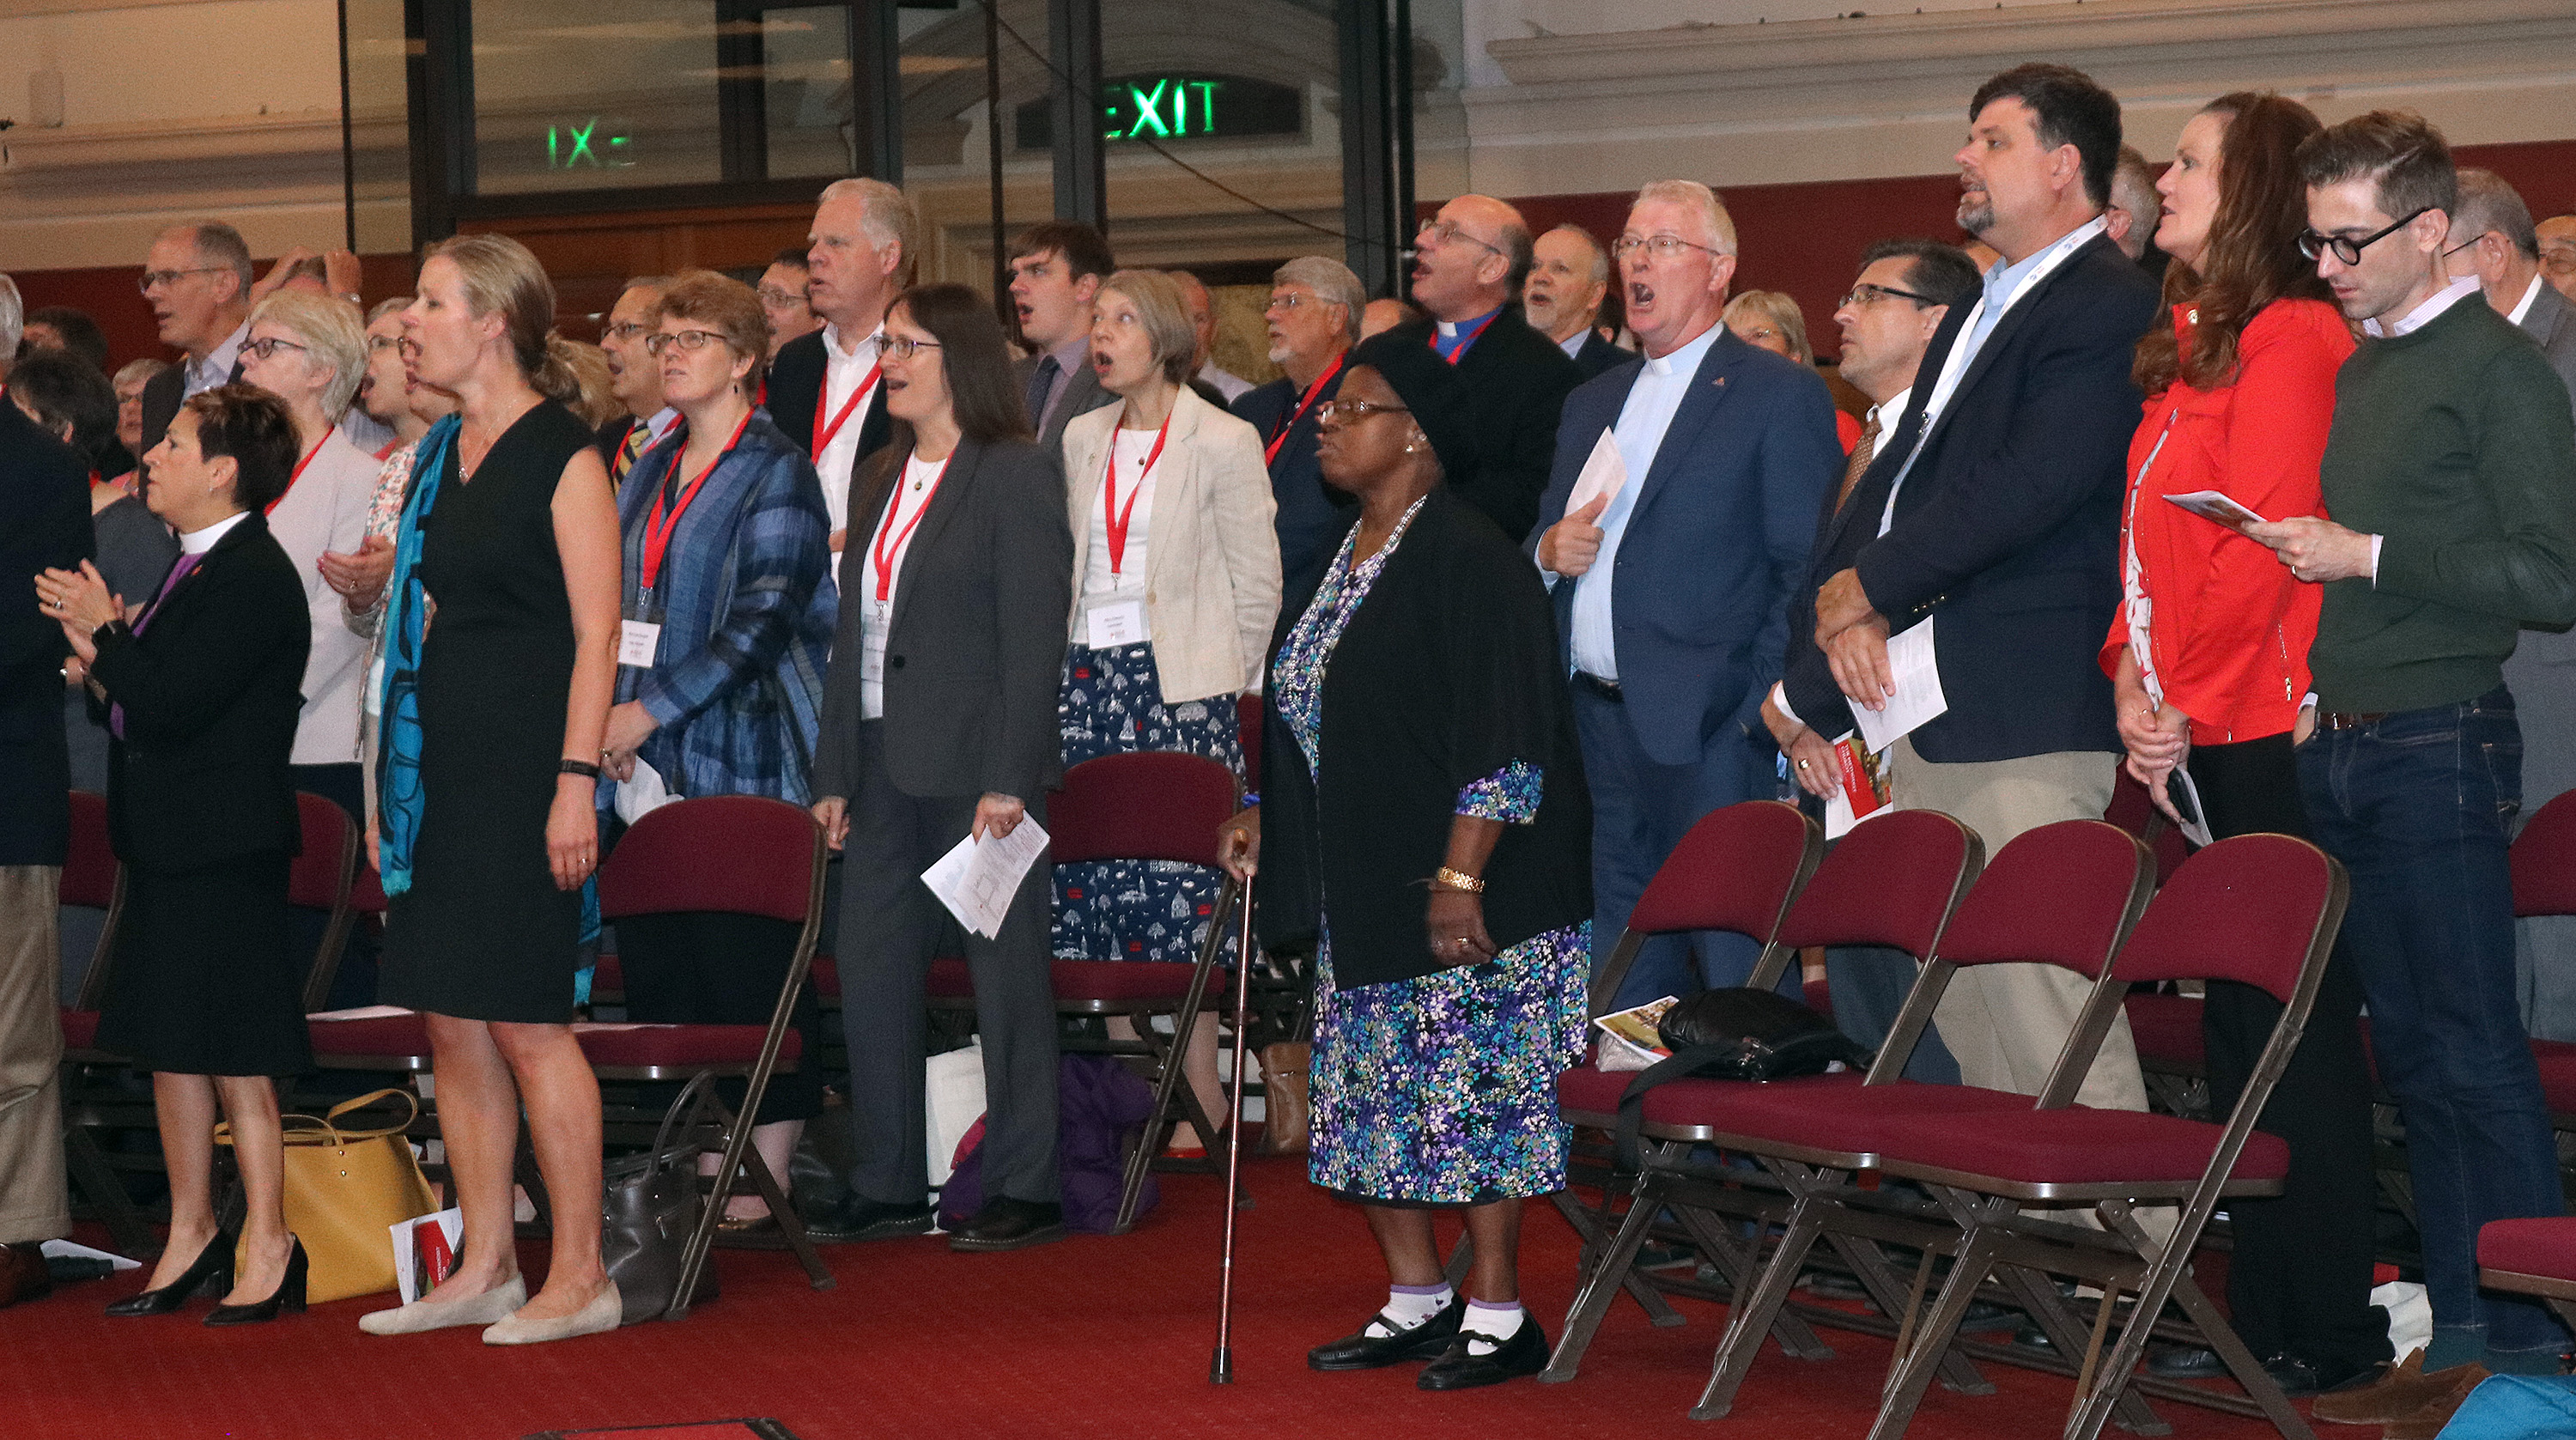 United Methodists and British Methodists sing at Methodist Central Hall, Westminster, during the 50th anniversary celebration of the partnership between the two churches. Photo by Priscilla Muzerengwa.